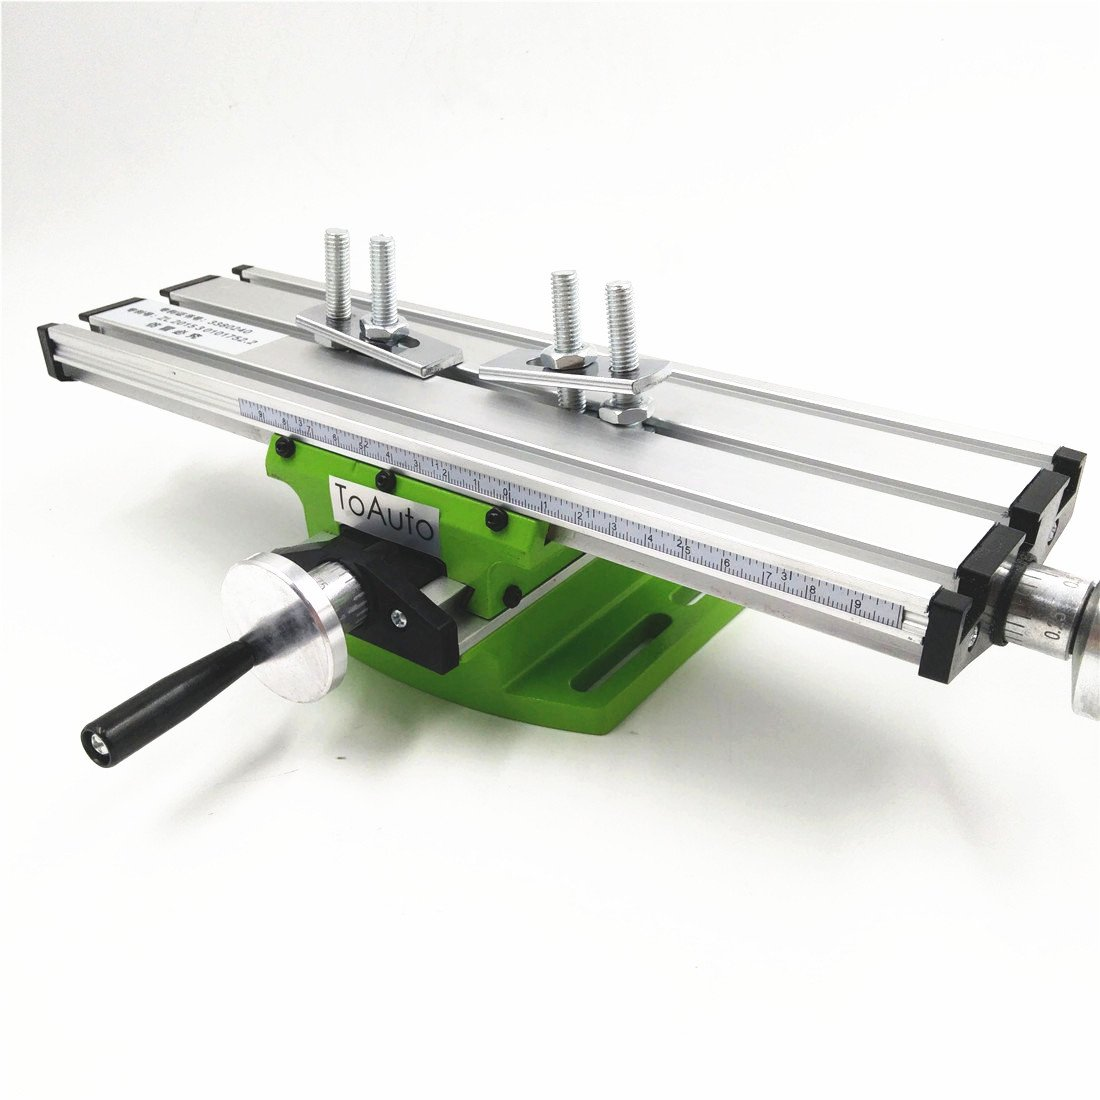 Milling Worktable 310×90MM Milling Working Table Milling Machine Compound Drilling Slide Table For DIY Bench Drill by TOAUTO (Image #3)